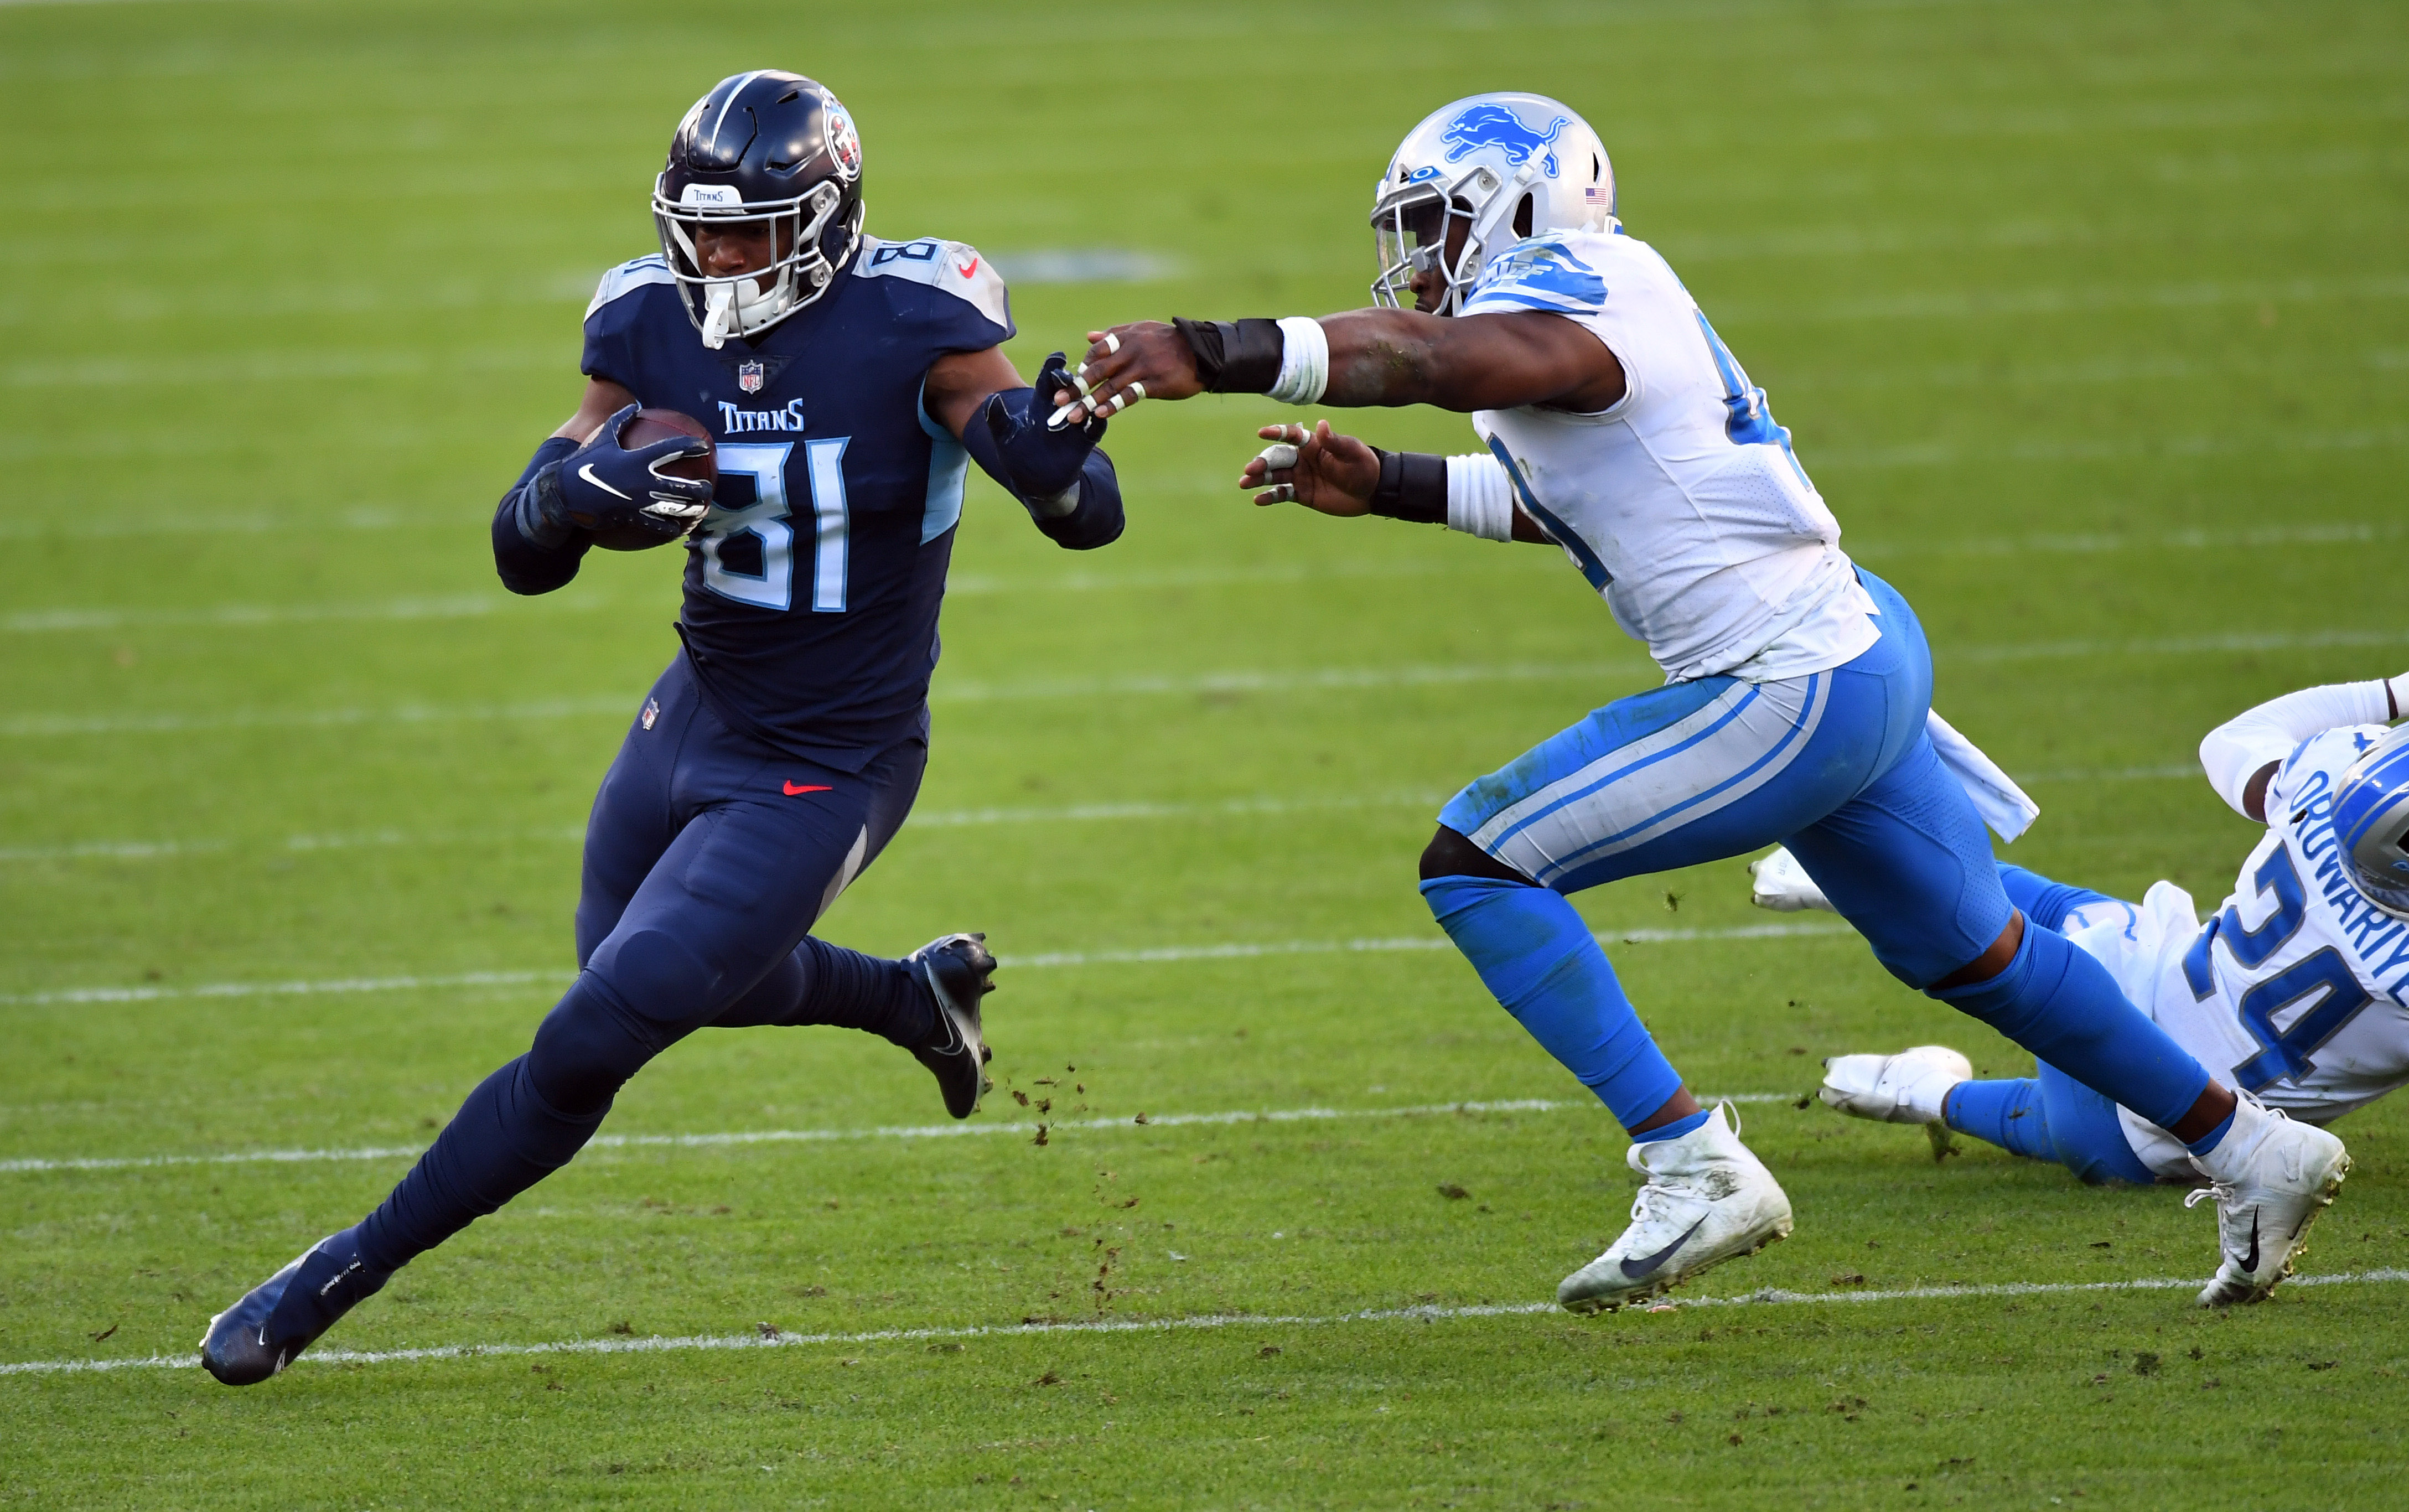 NFL: Detroit Lions at Tennessee Titans